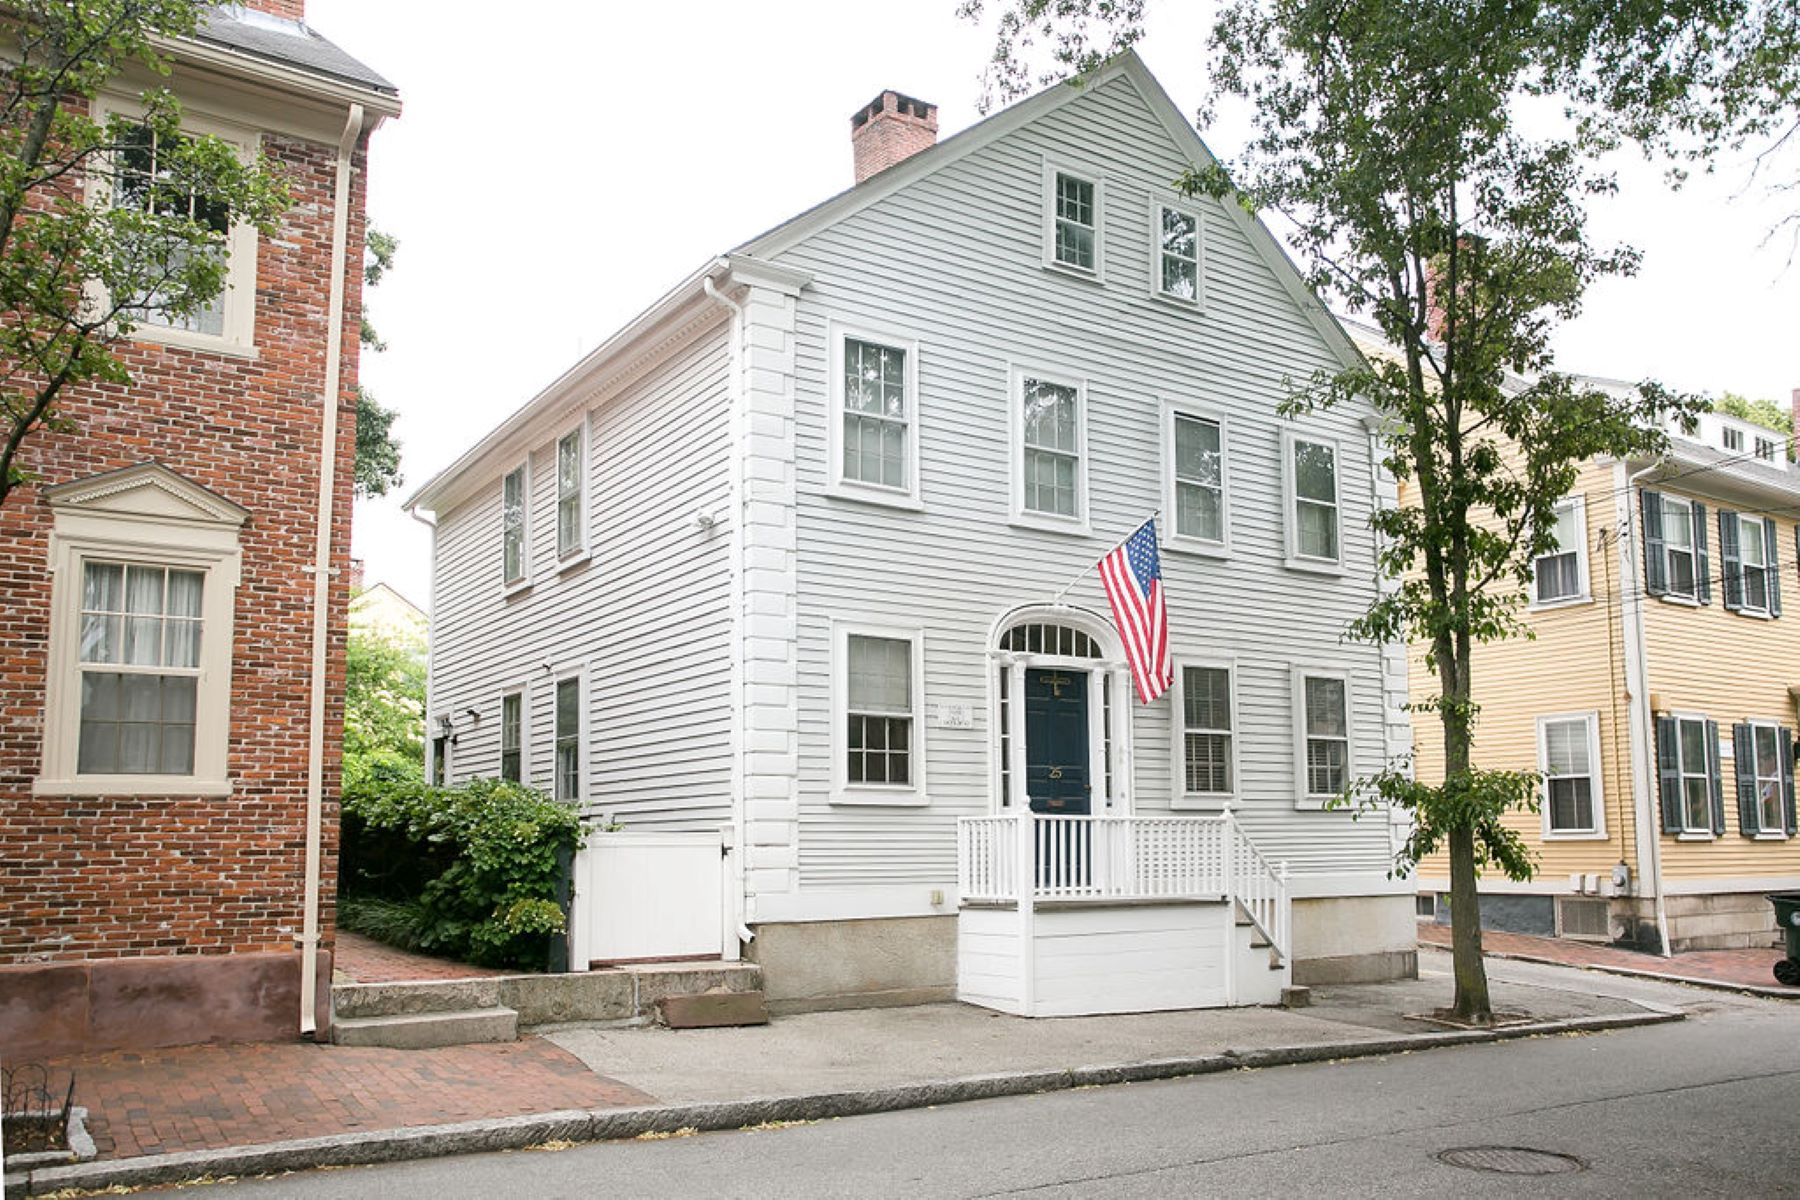 Condominiums for Sale at 25 Arnold Street, #1, East Side Of Providence, RI 25 Arnold Street, 1 Providence, Rhode Island 02906 United States